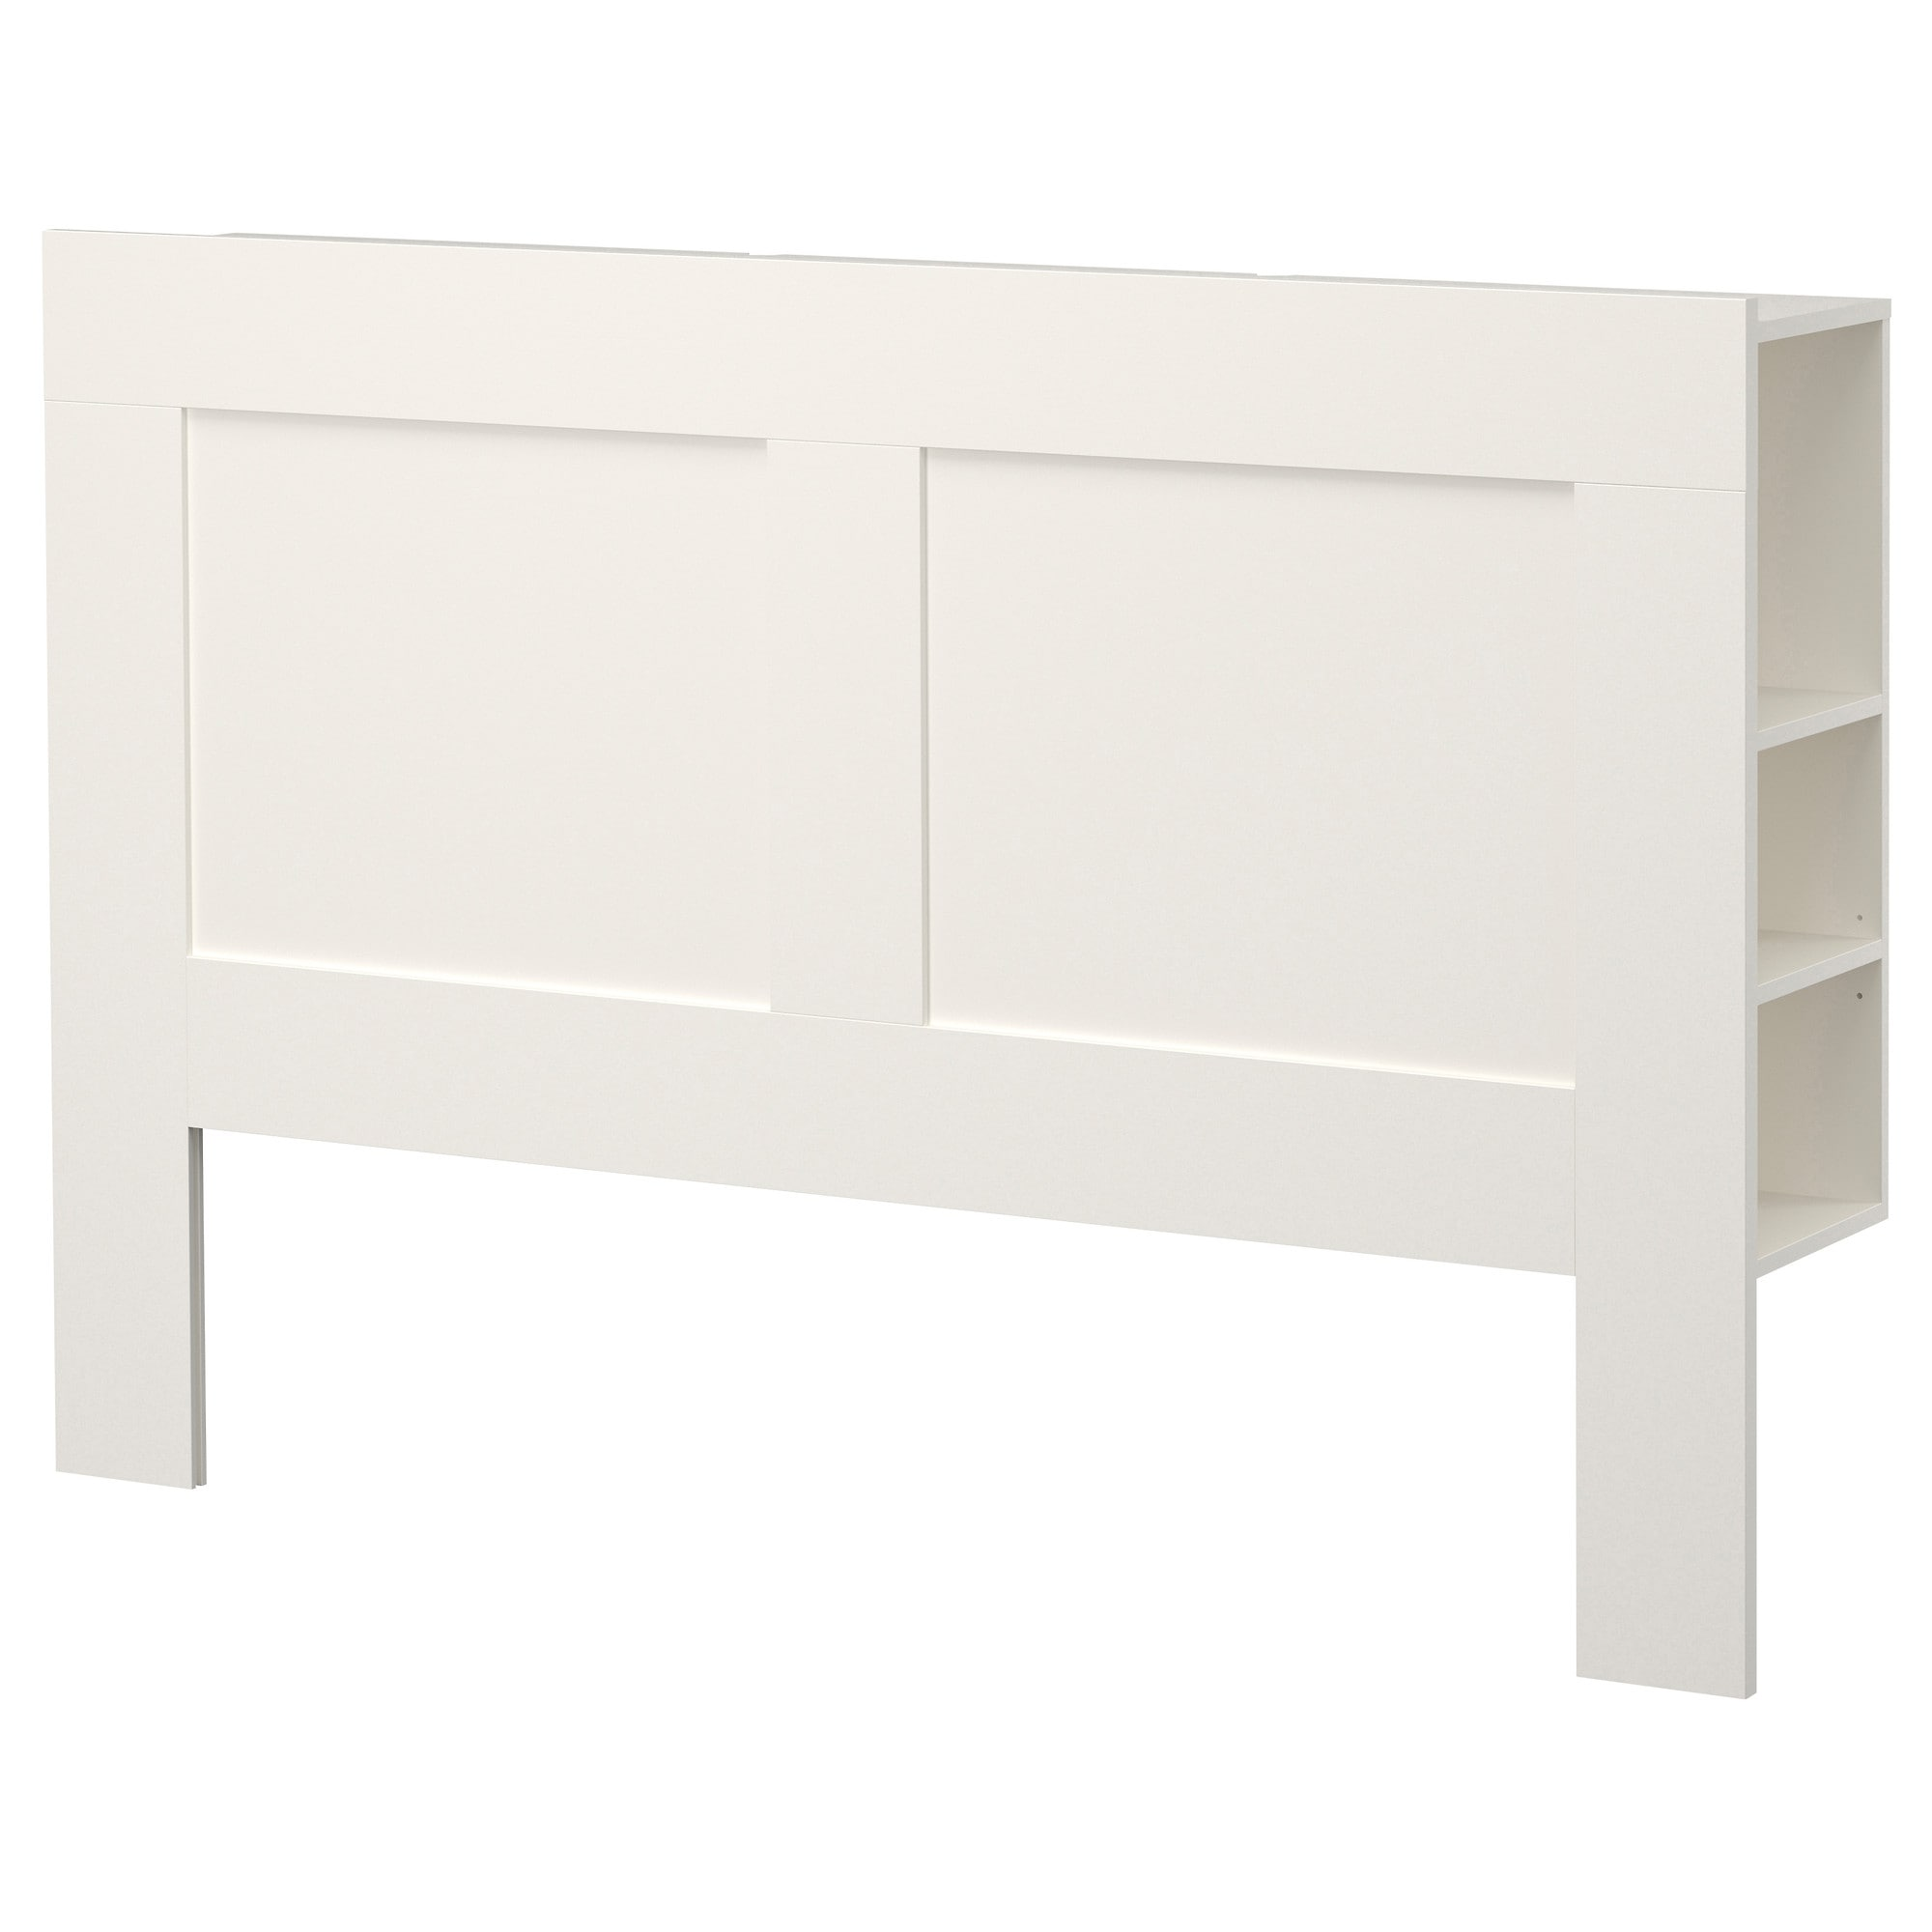 Ikea headboard storage interior decorating accessories - Ikea tete de lit ...